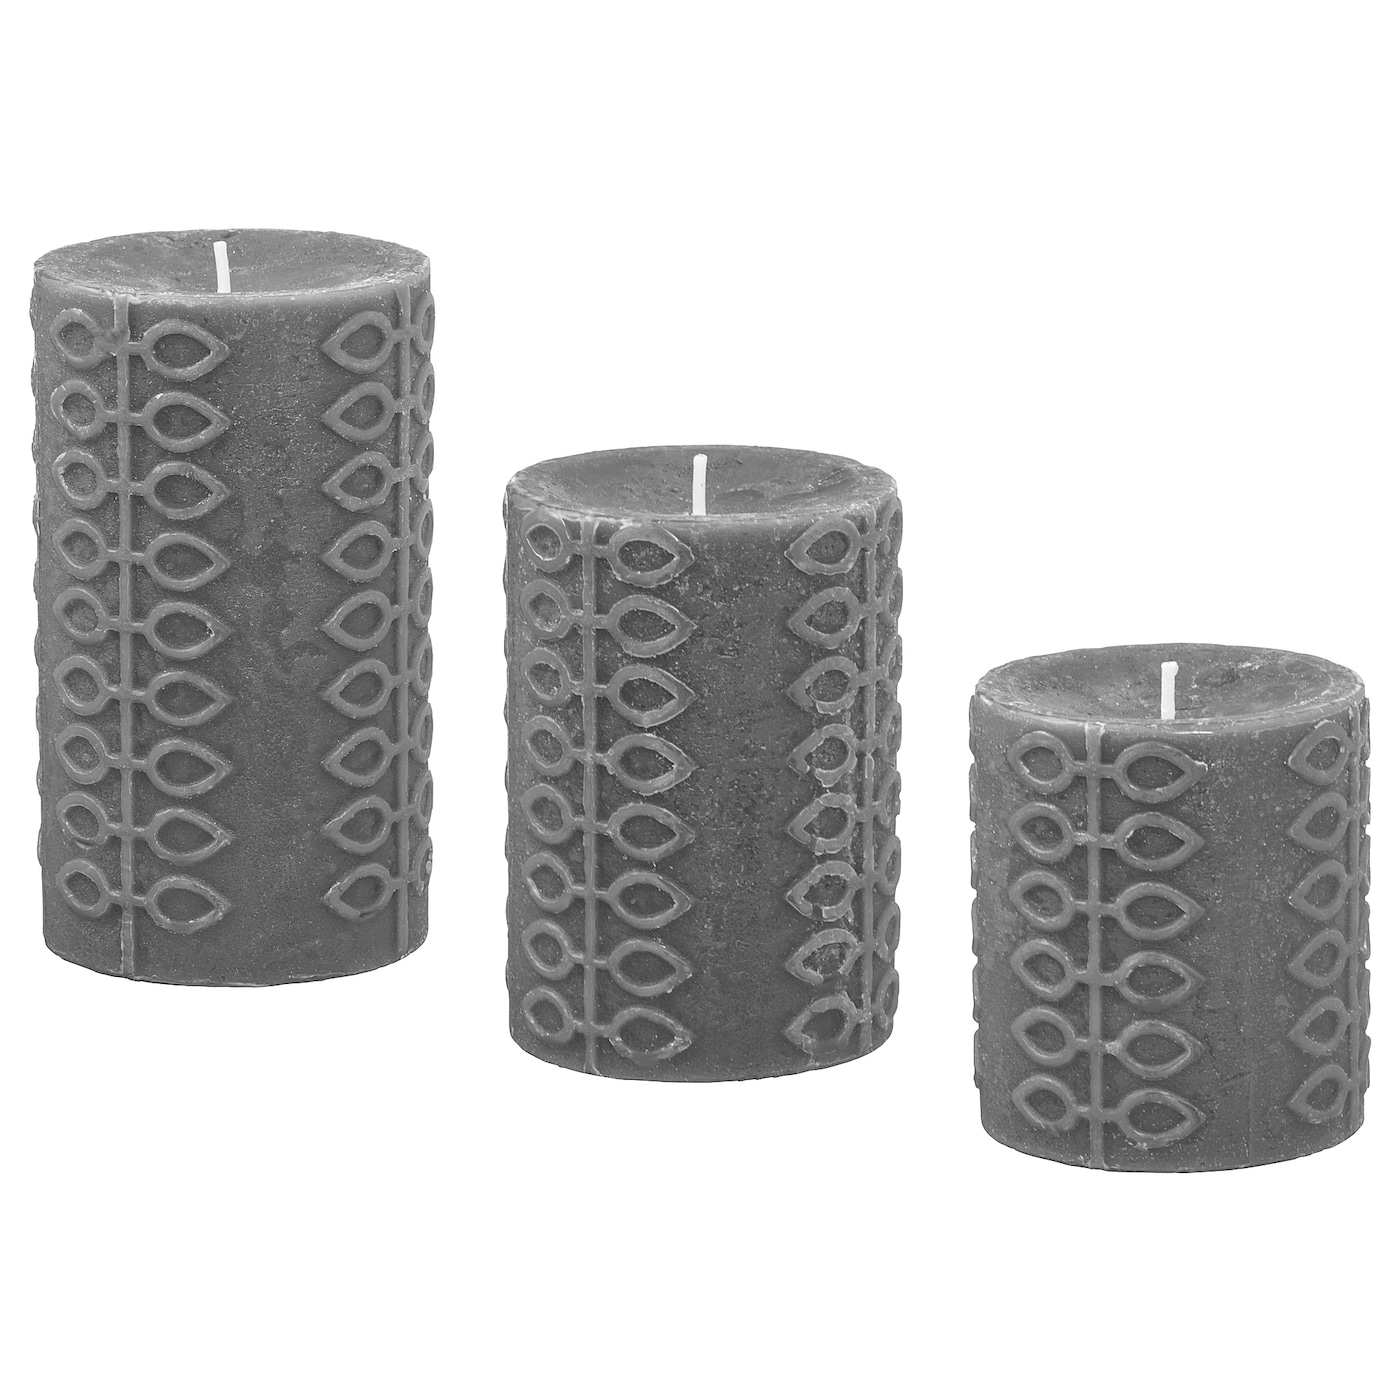 IKEA NJUTNING scented block candle, set of 3 A spicy scent of bergamot and tea with warm milk.